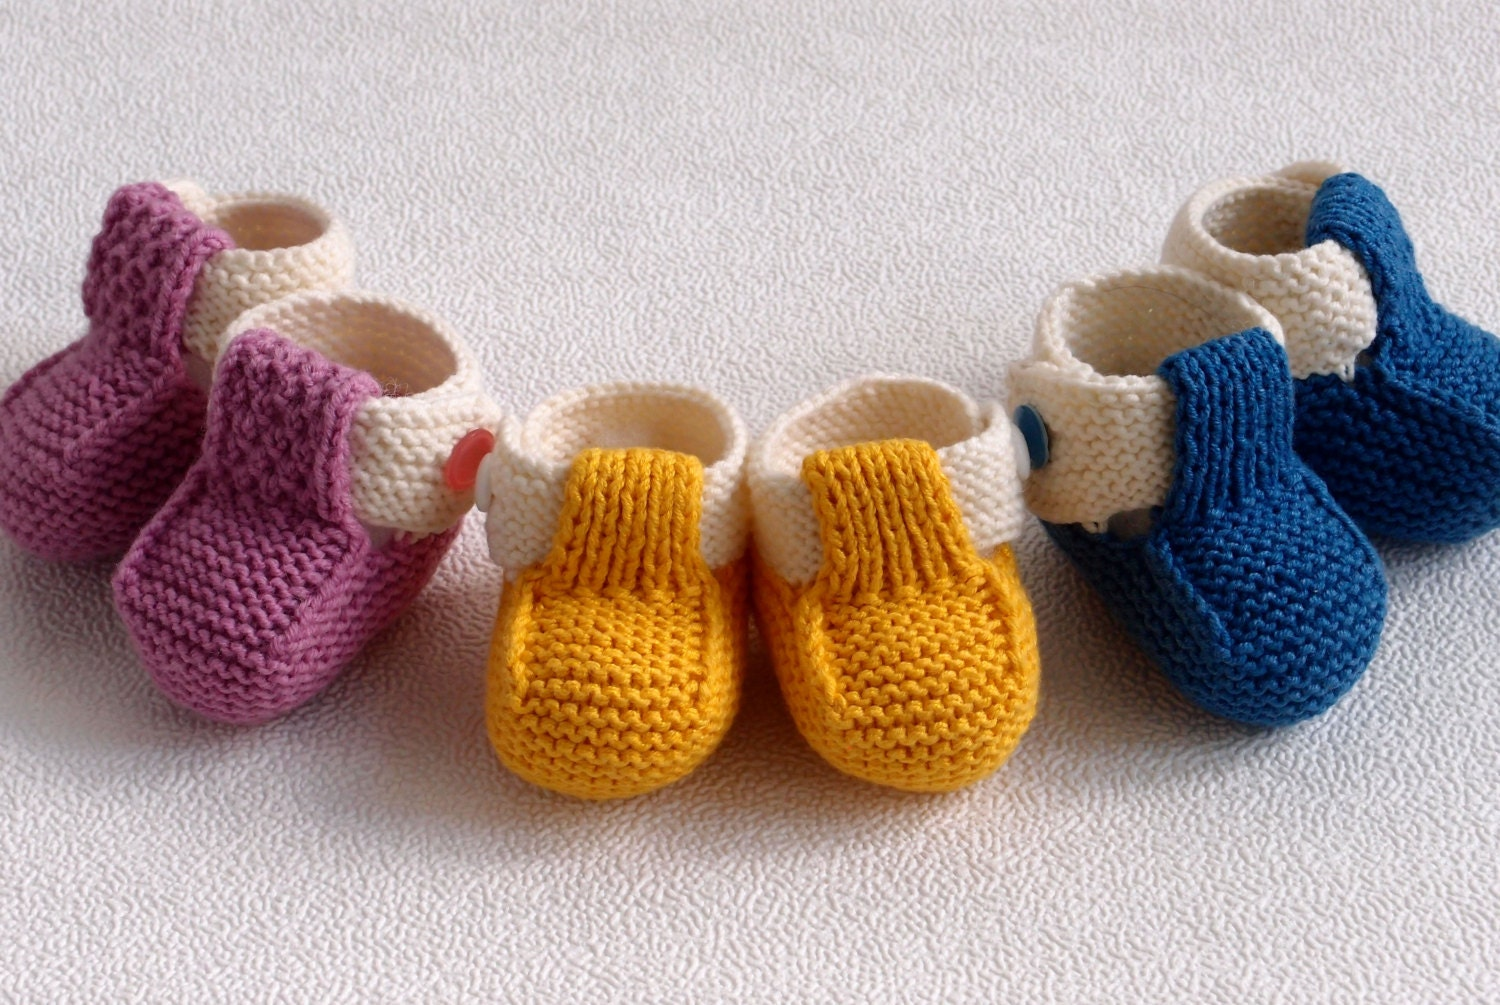 Knitting Baby Shoes : Hand knit baby booties new shoes crib knitted